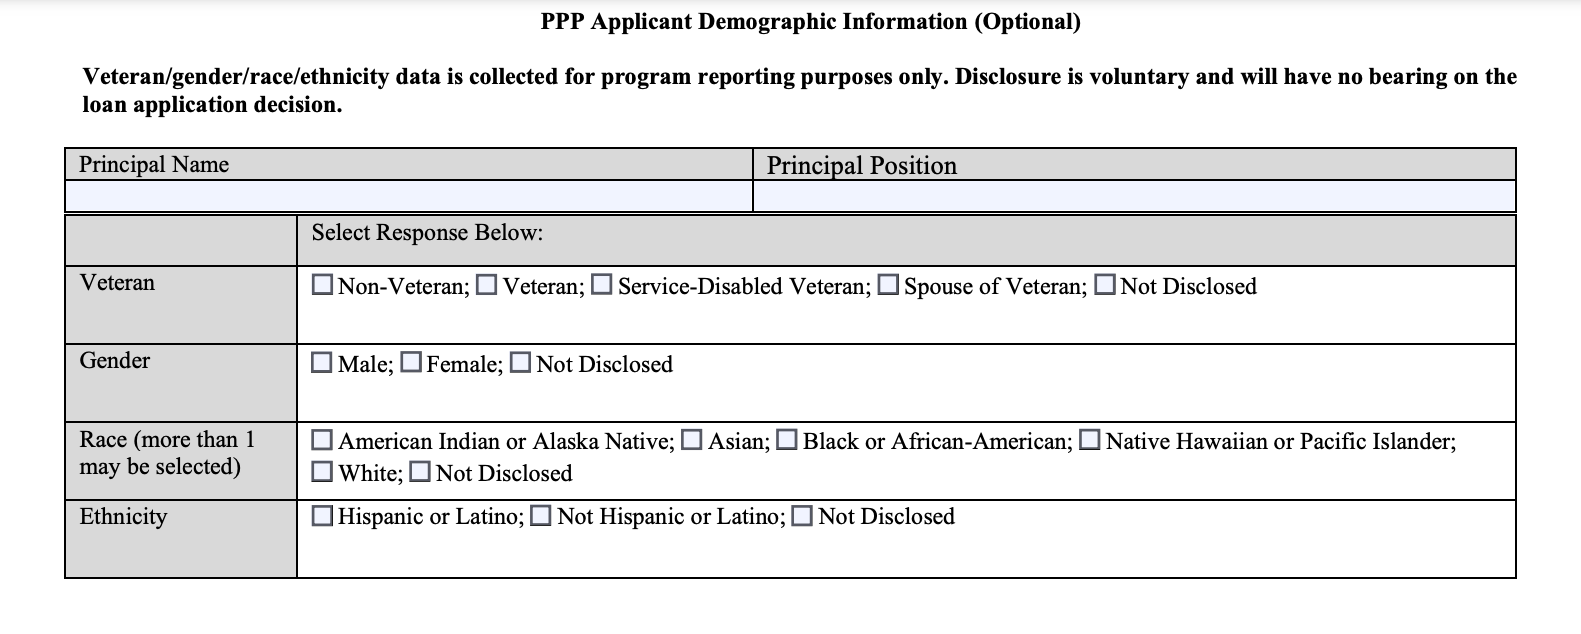 PPP Form 2483 Section 4